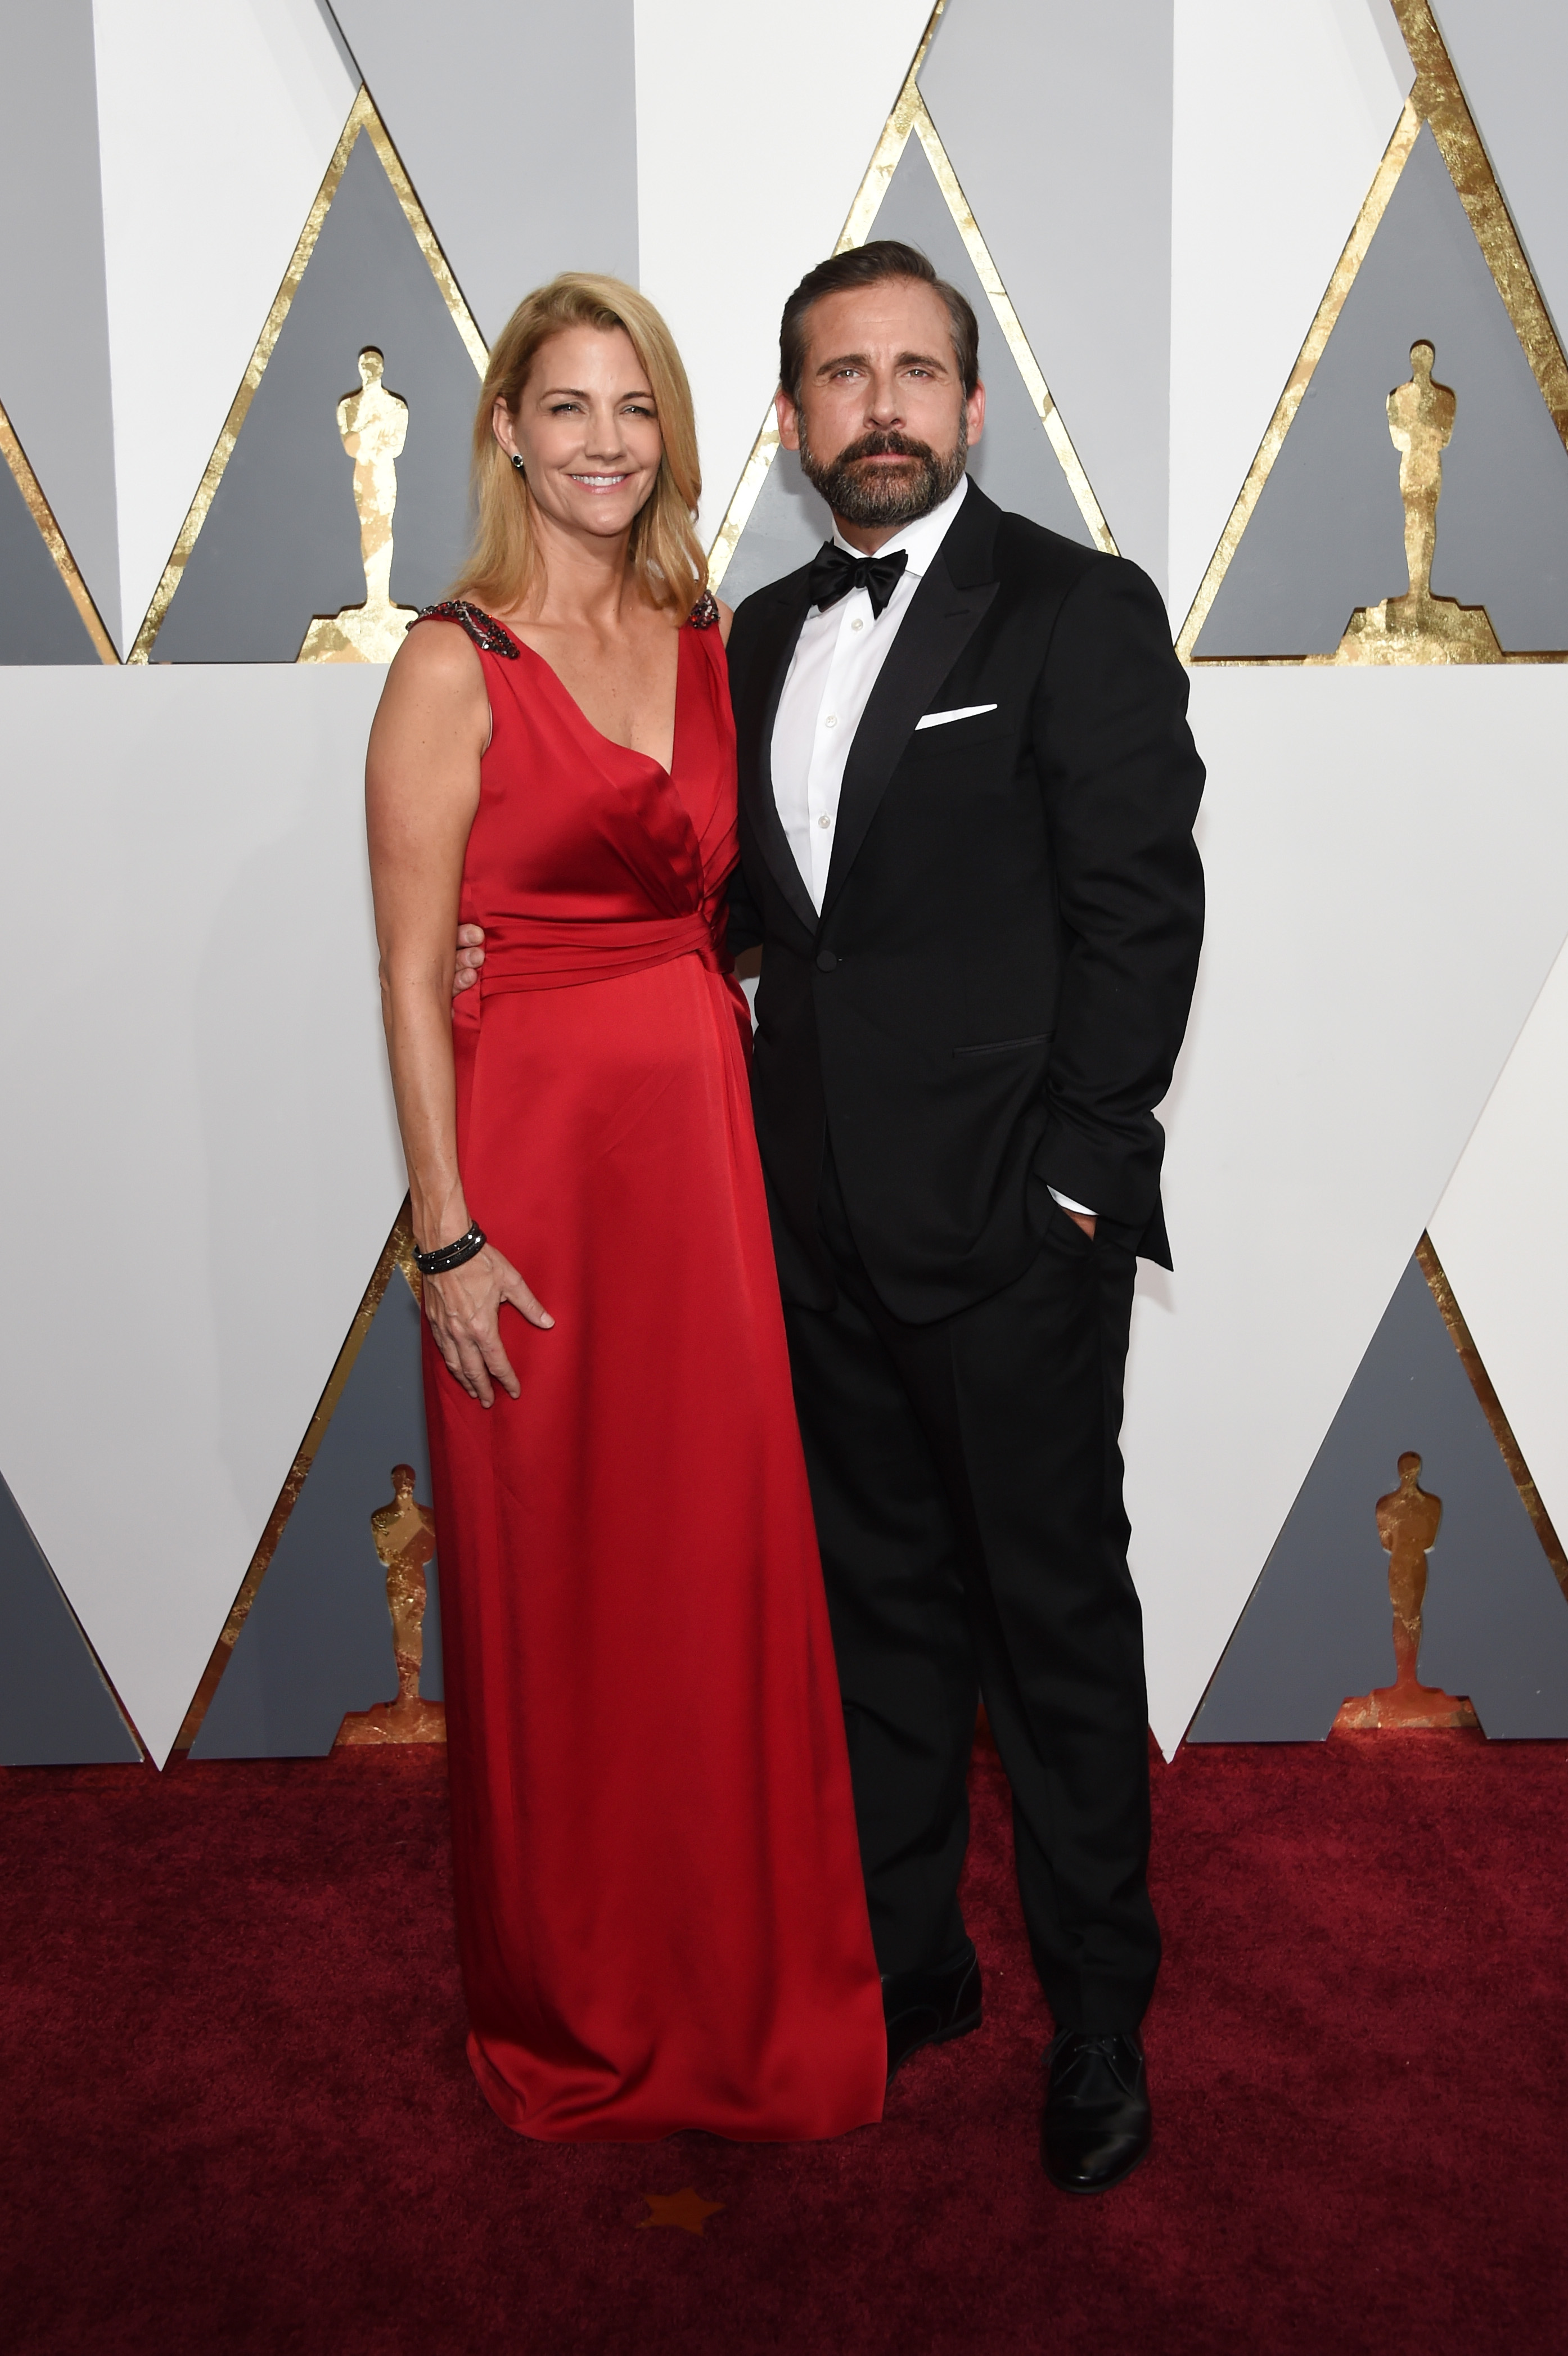 Nancy Carell and Steve Carell attend the 88th Annual Academy Awards on Feb. 28, 2016 in Hollywood, Calif.